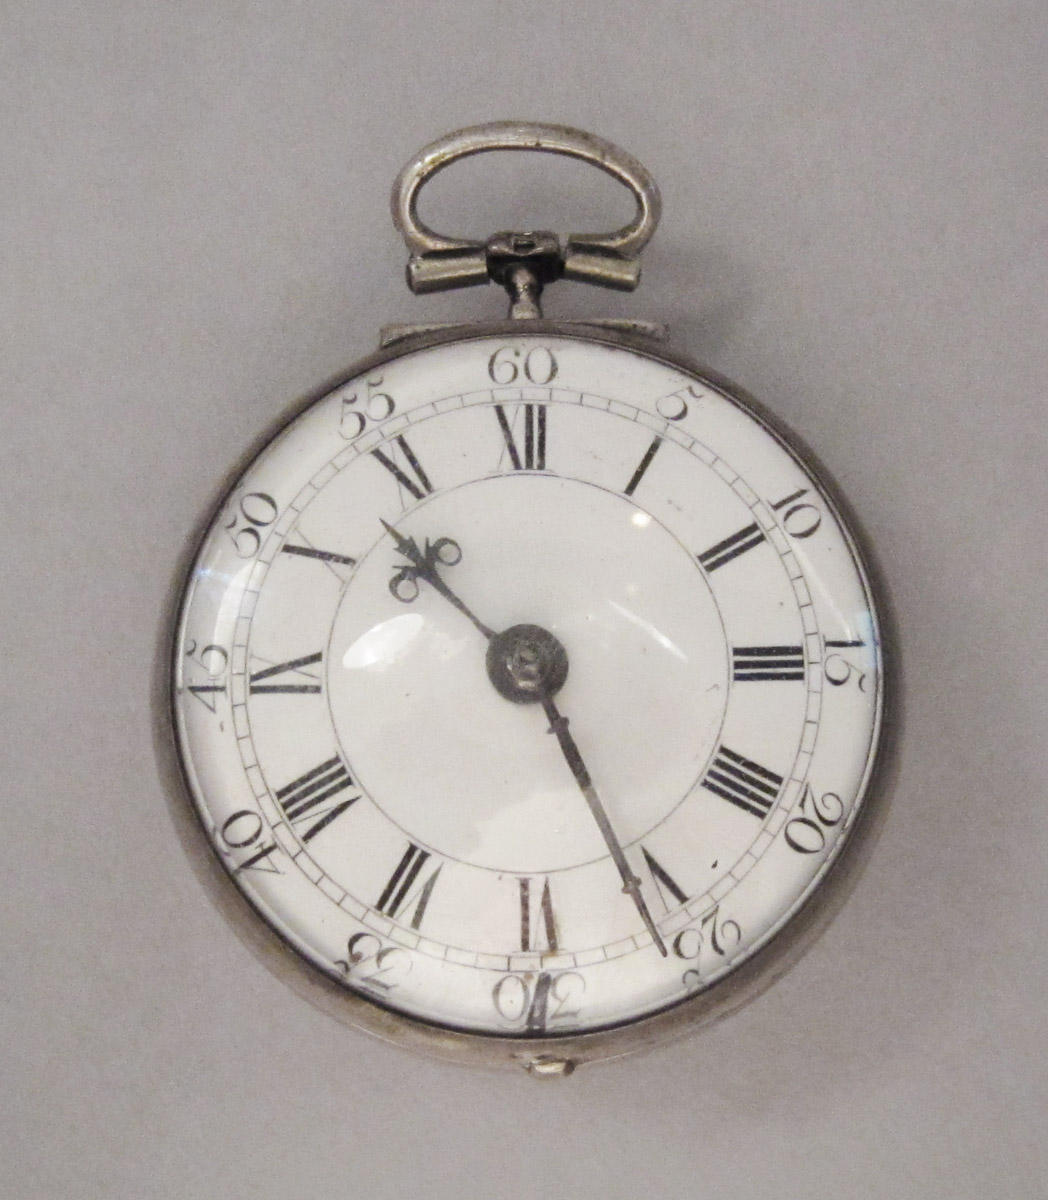 1956.0029.001 B, C Watch case, upper surface